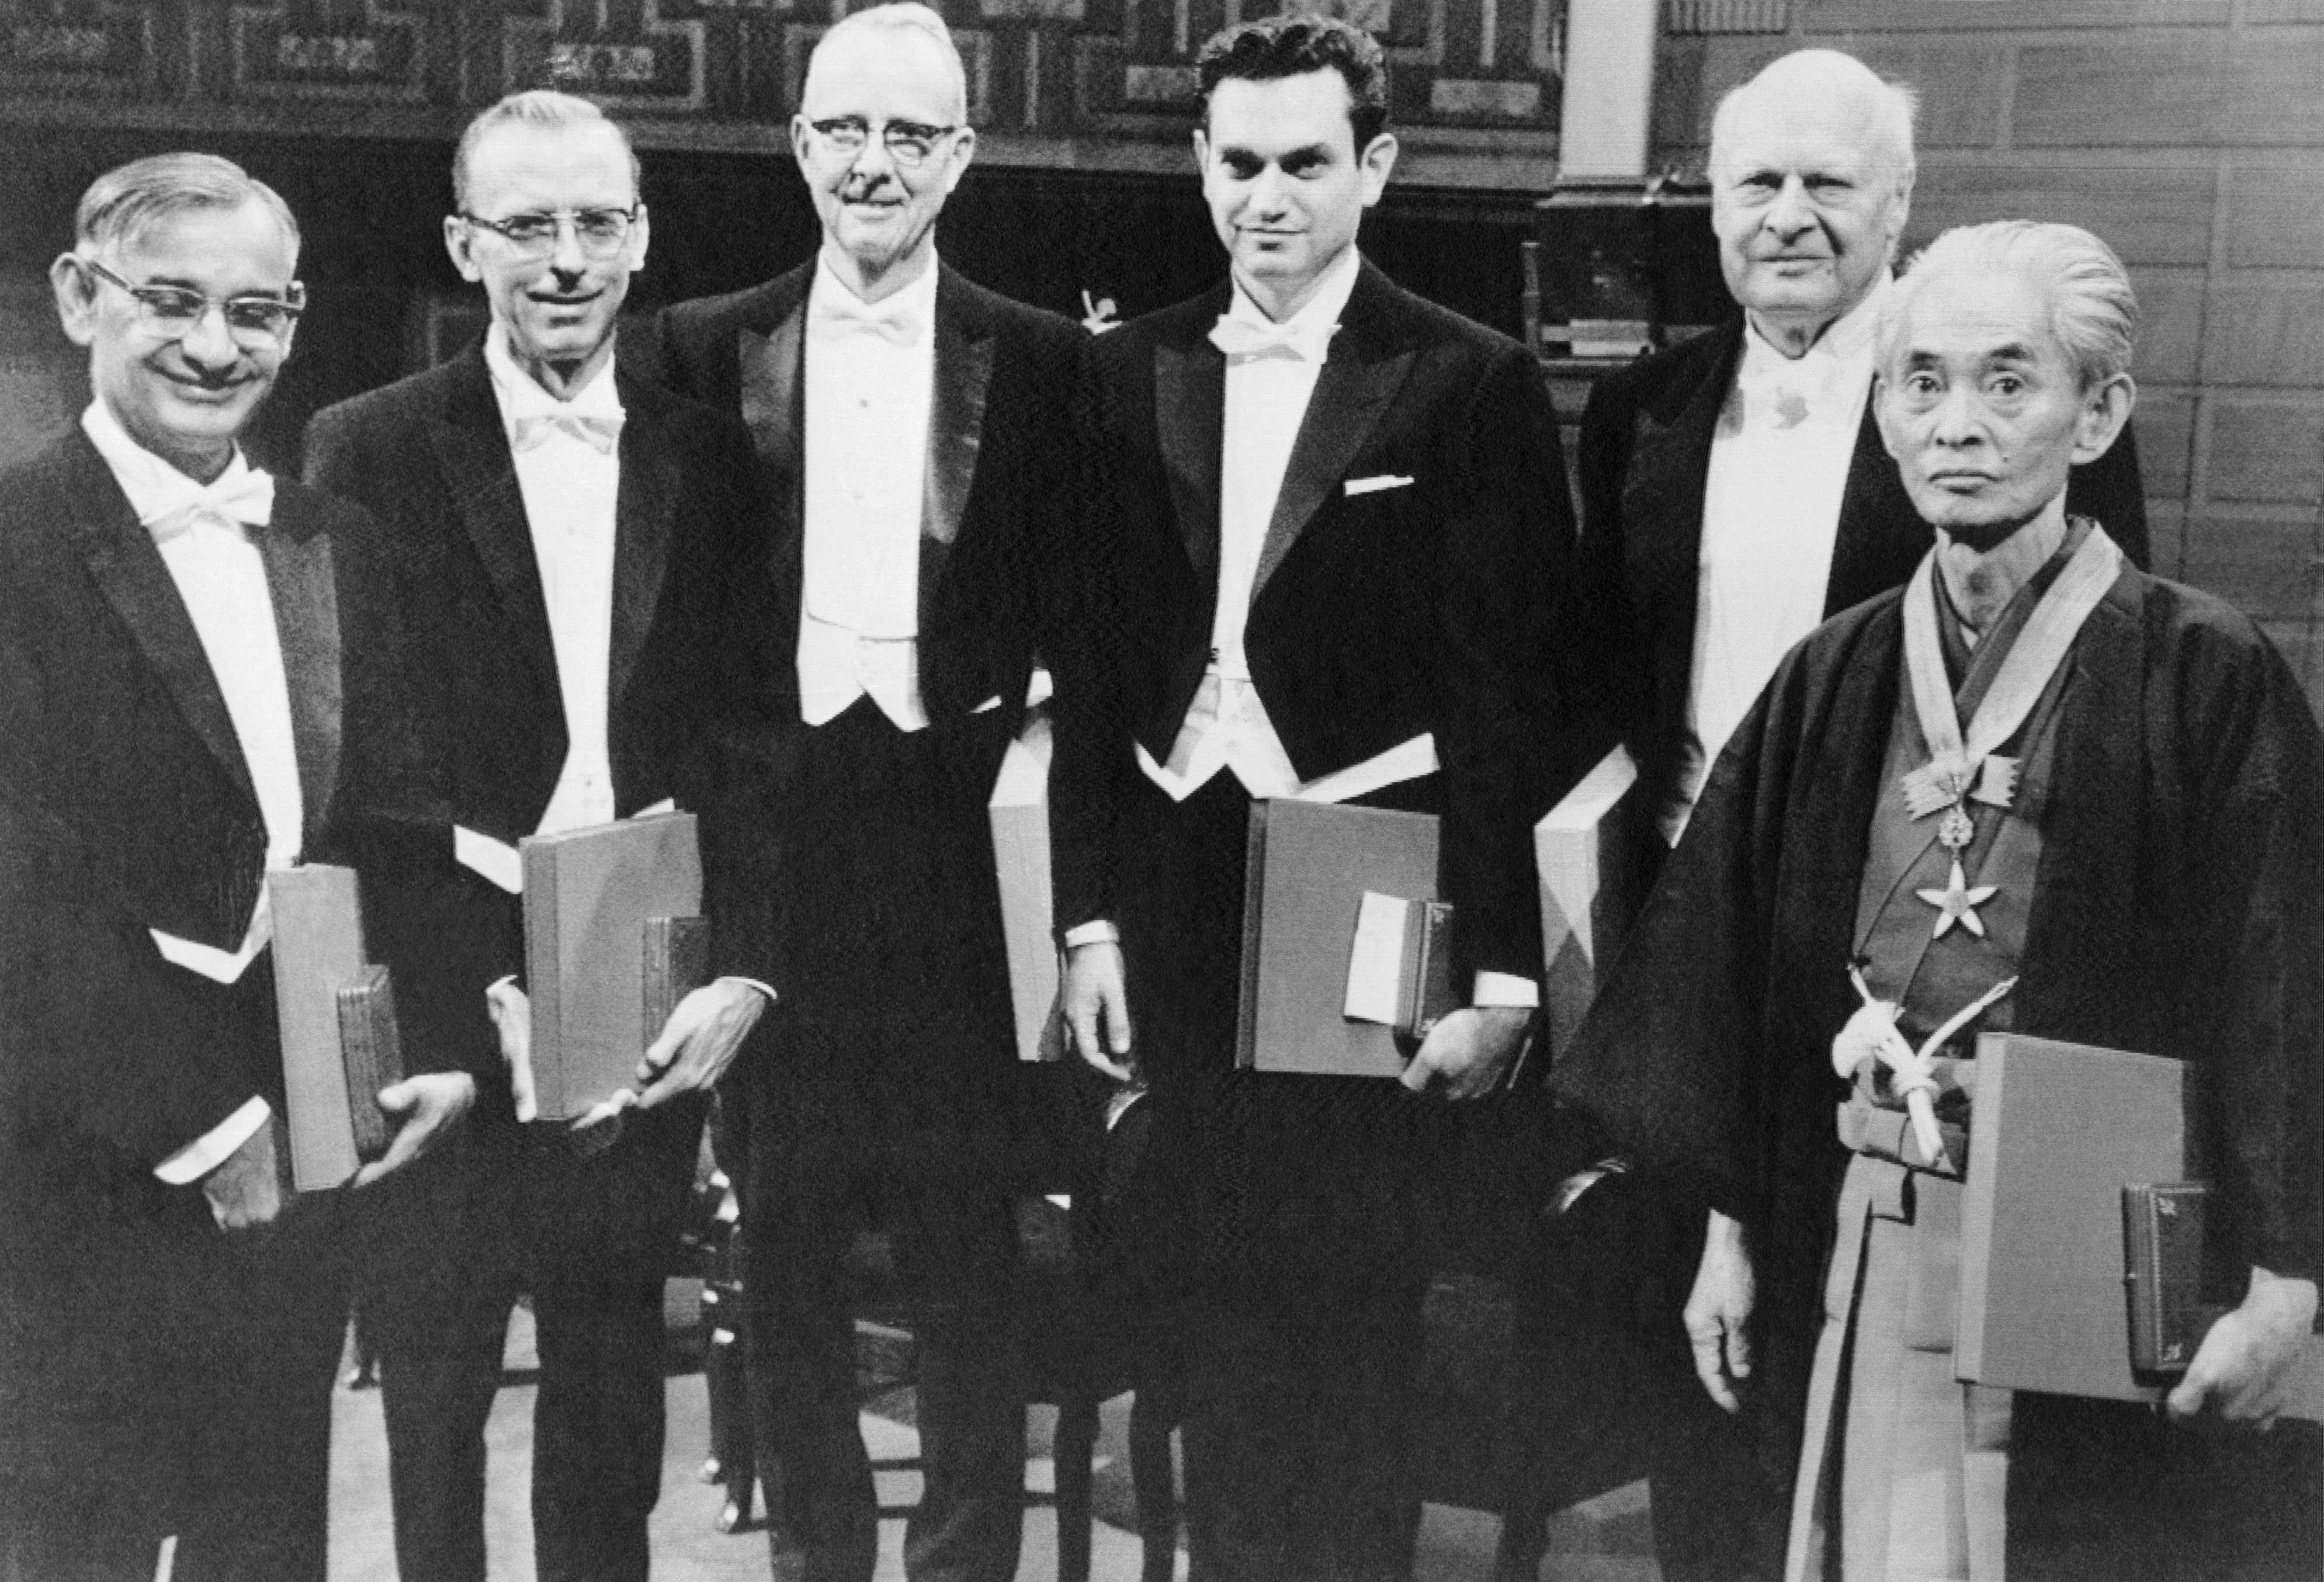 (Original Caption) Nobel Prize Winners. Stockholm: The 1968 Nobel Prize recipients, five Americans and one Japanese where judged to have  most benefited mankind  in the past year. They appear here at the awards ceremony. Left to right: Professor H. Gobind Khorana, Robert W. Holley, Professor Luis W. Alvarez, Dr. Marshall W. Nirenberg, Lars Onsager and Japanese author Yasunari Kawabata.